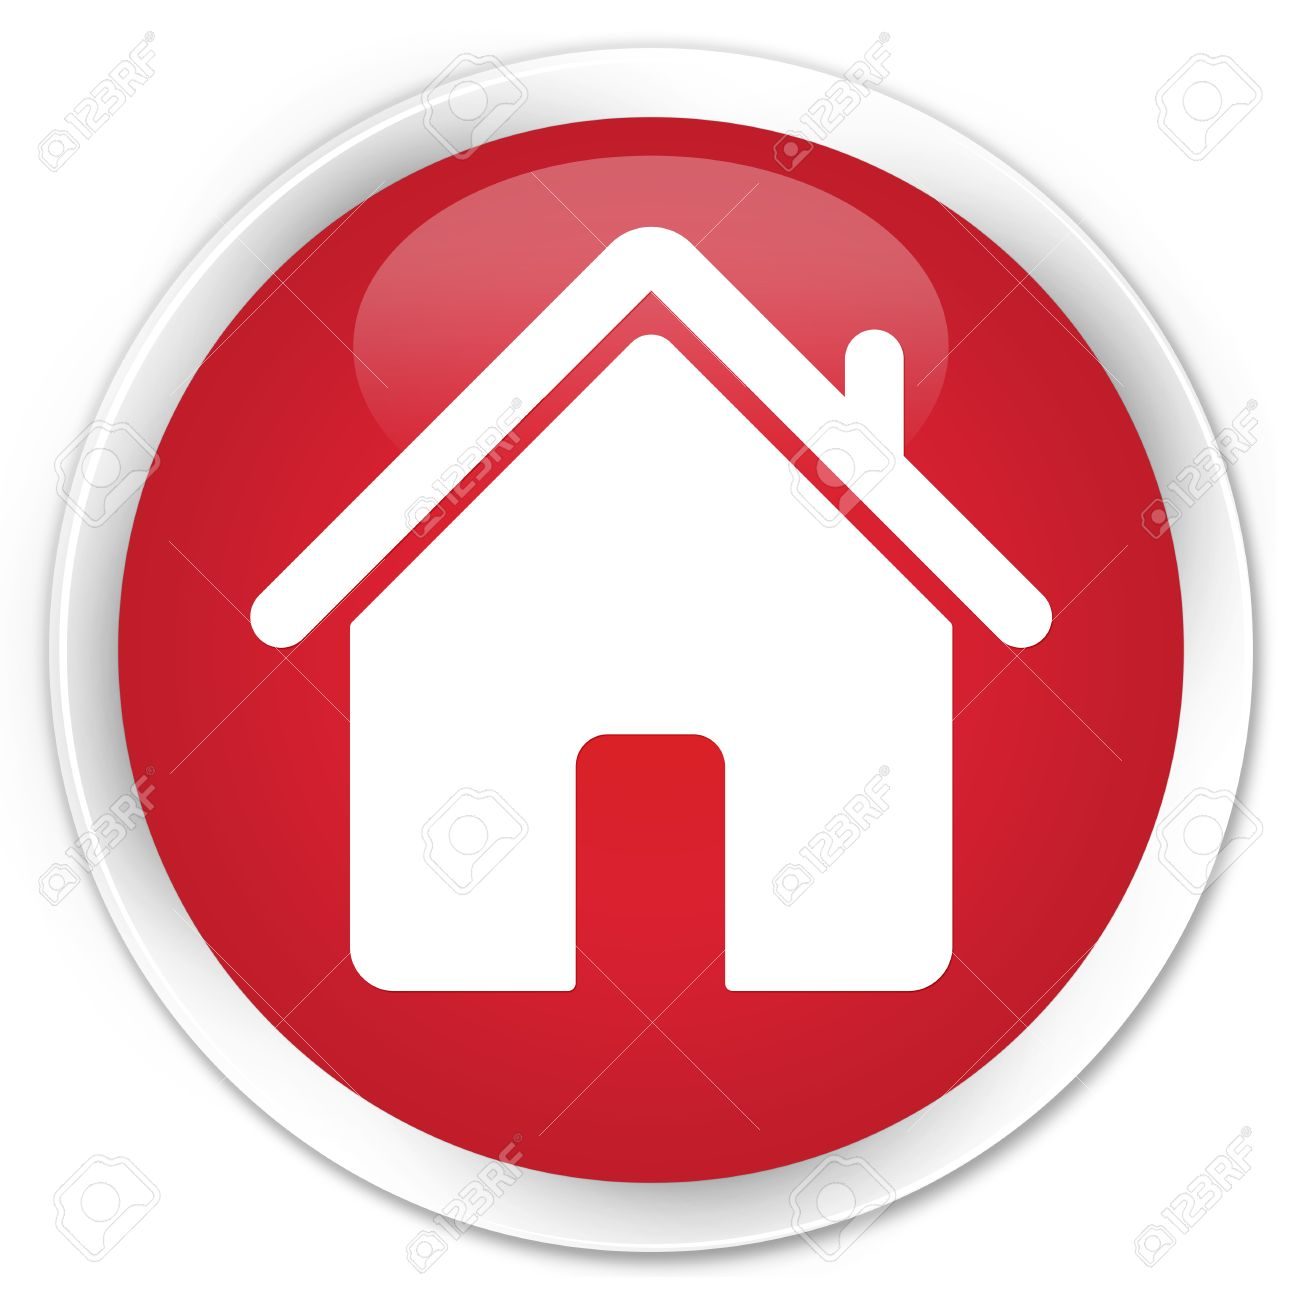 Home Icon Red Glossy Round Button Stock Photo, Picture And Royalty Free  Image. Image 35973128.